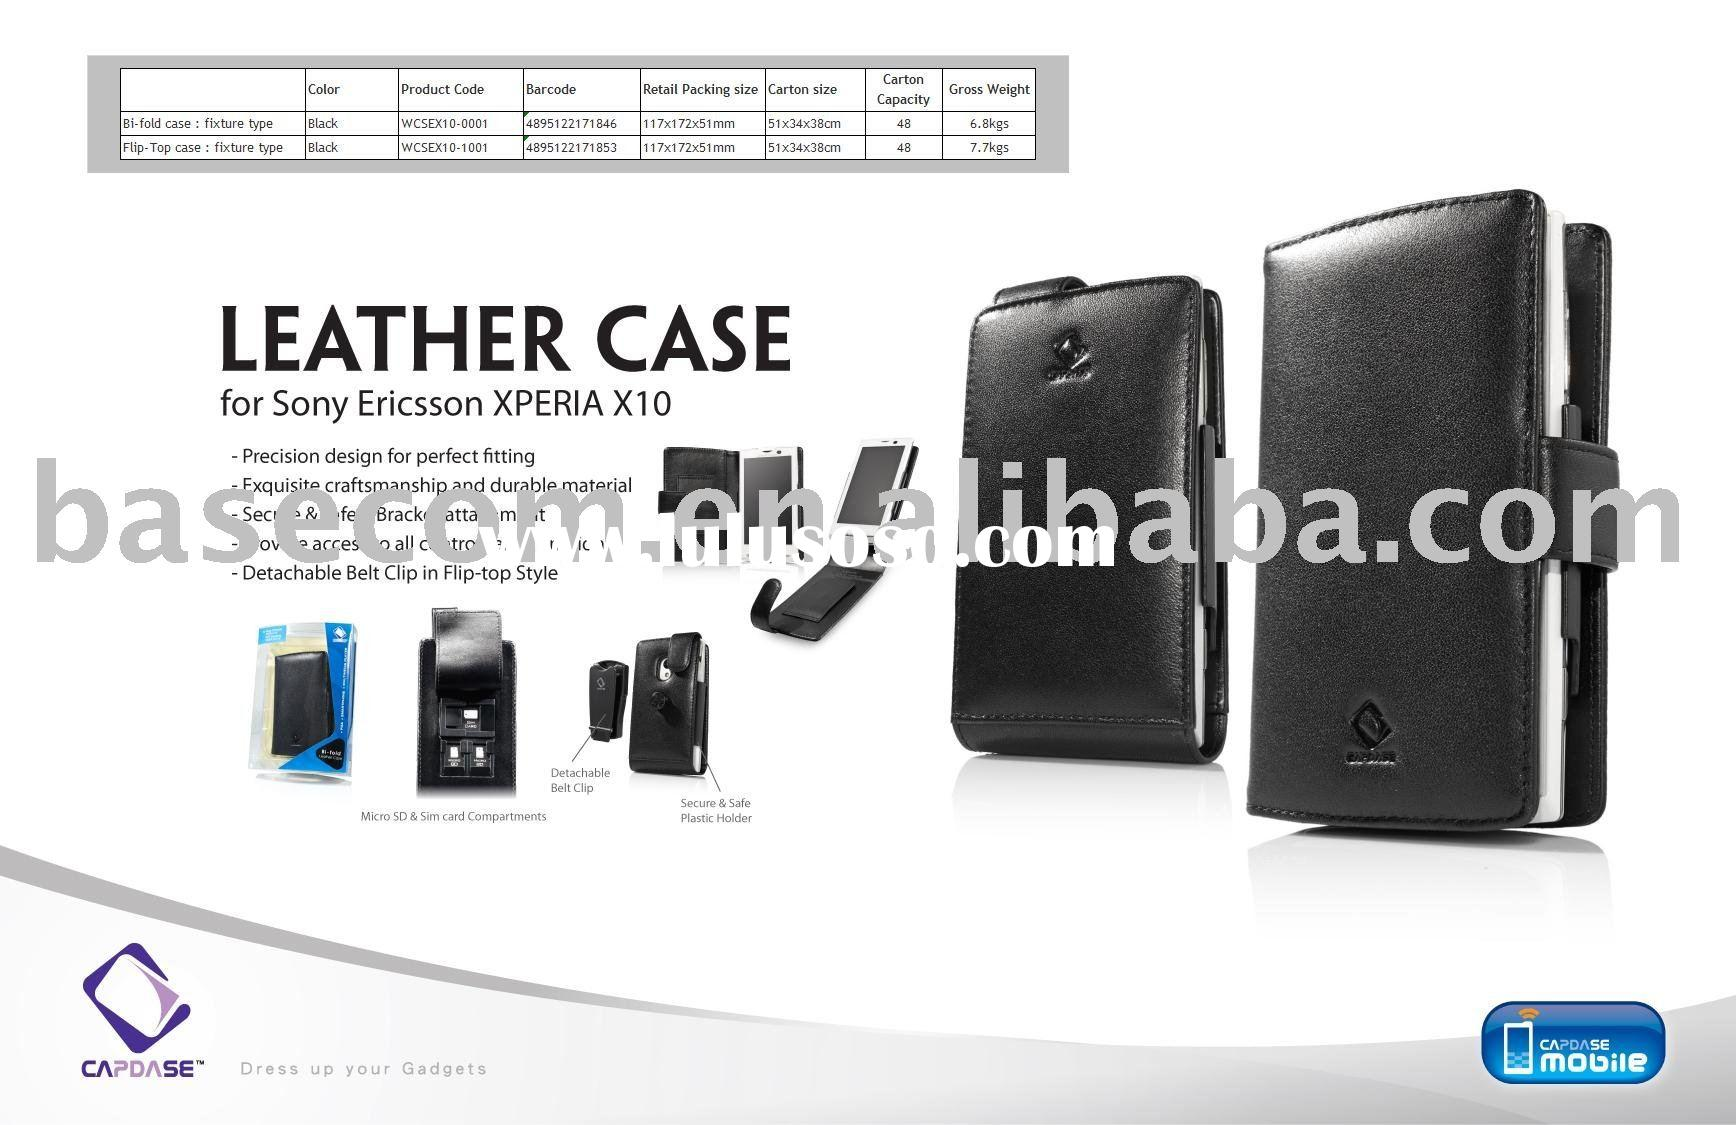 CAPDASE leather case for Sony Ericsson XPERIA X10